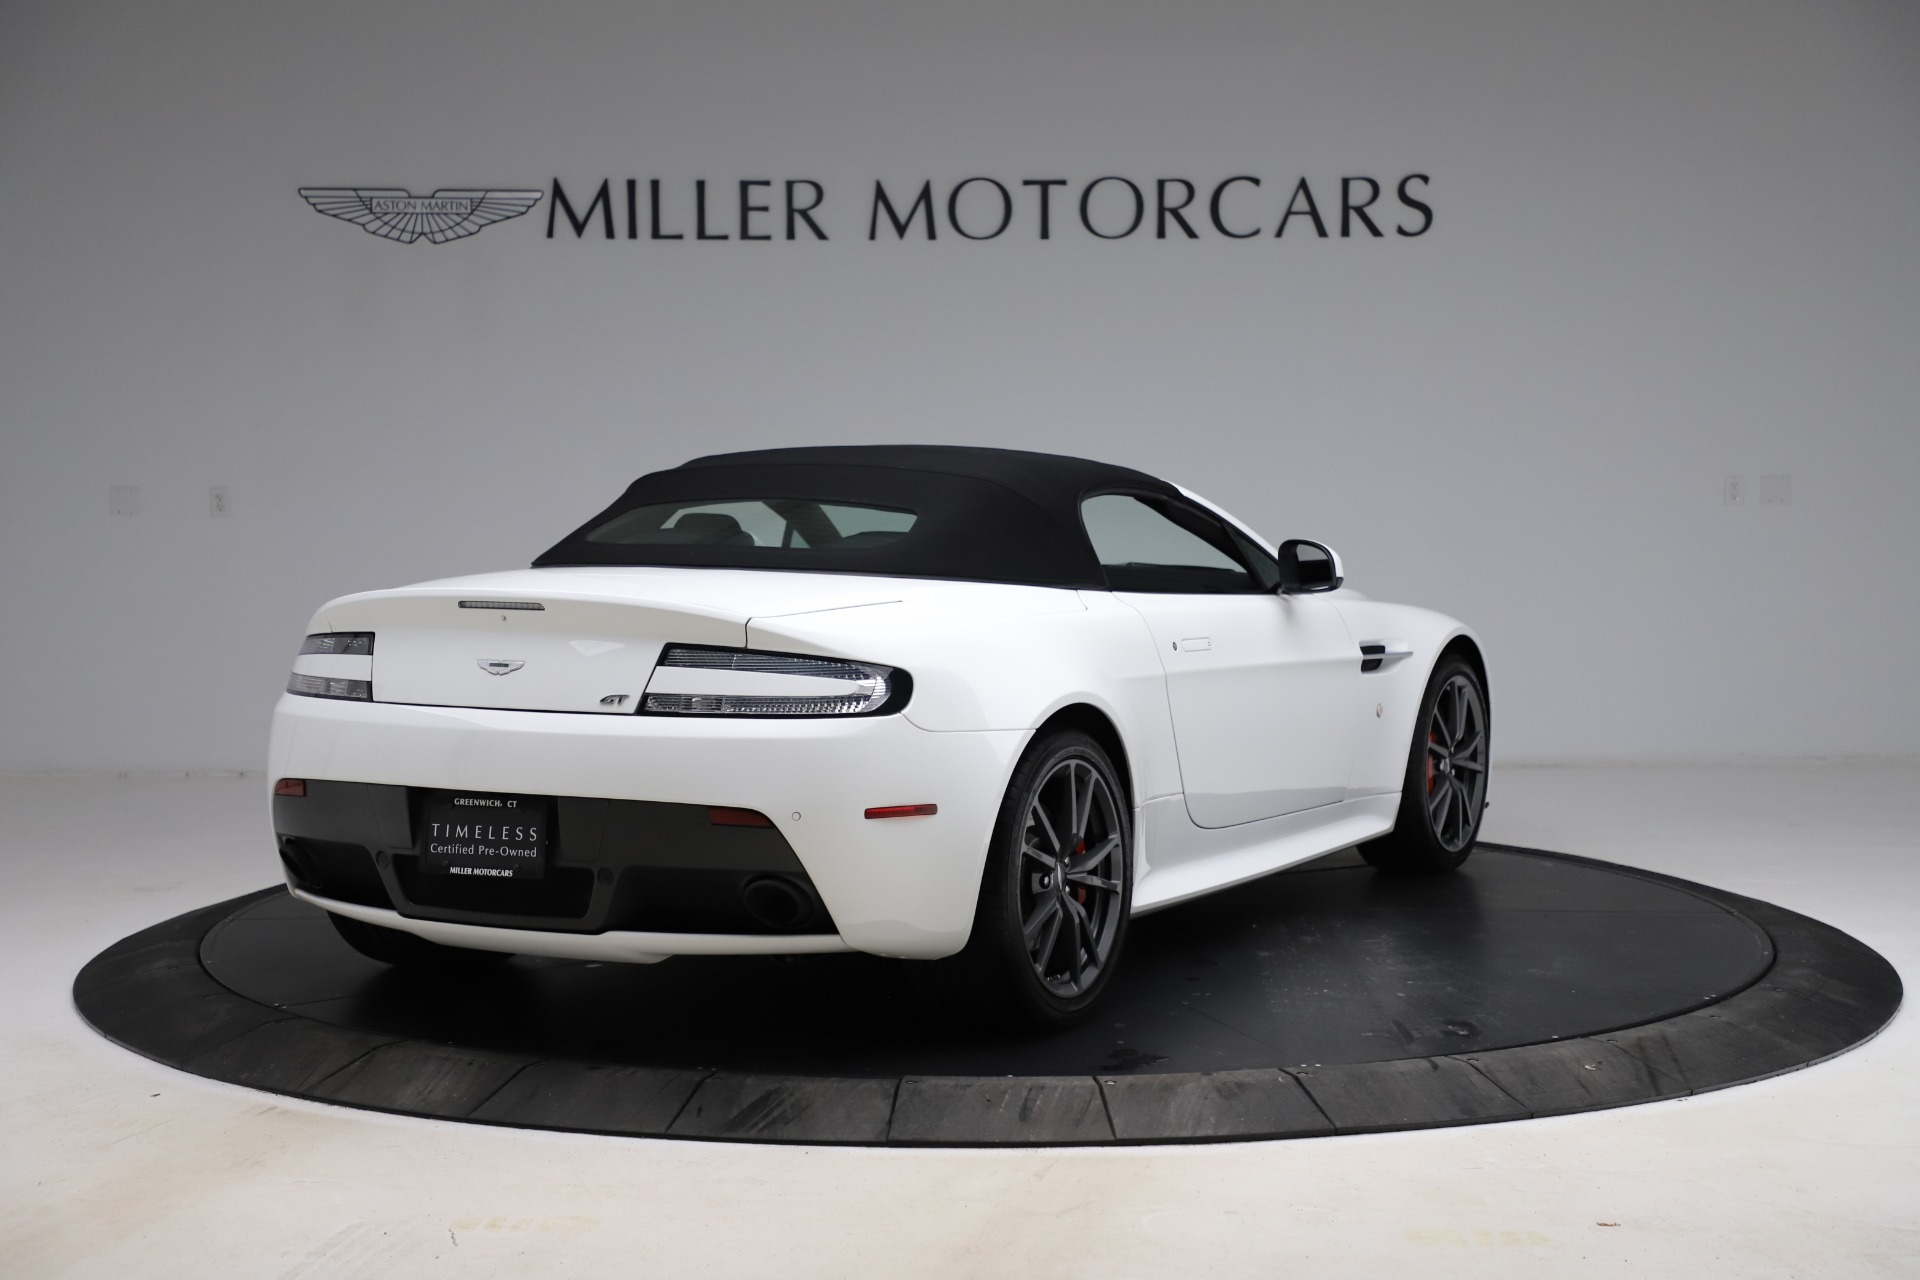 New 2015 Aston Martin Vantage GT GT Roadster For Sale In Westport, CT 93_p28